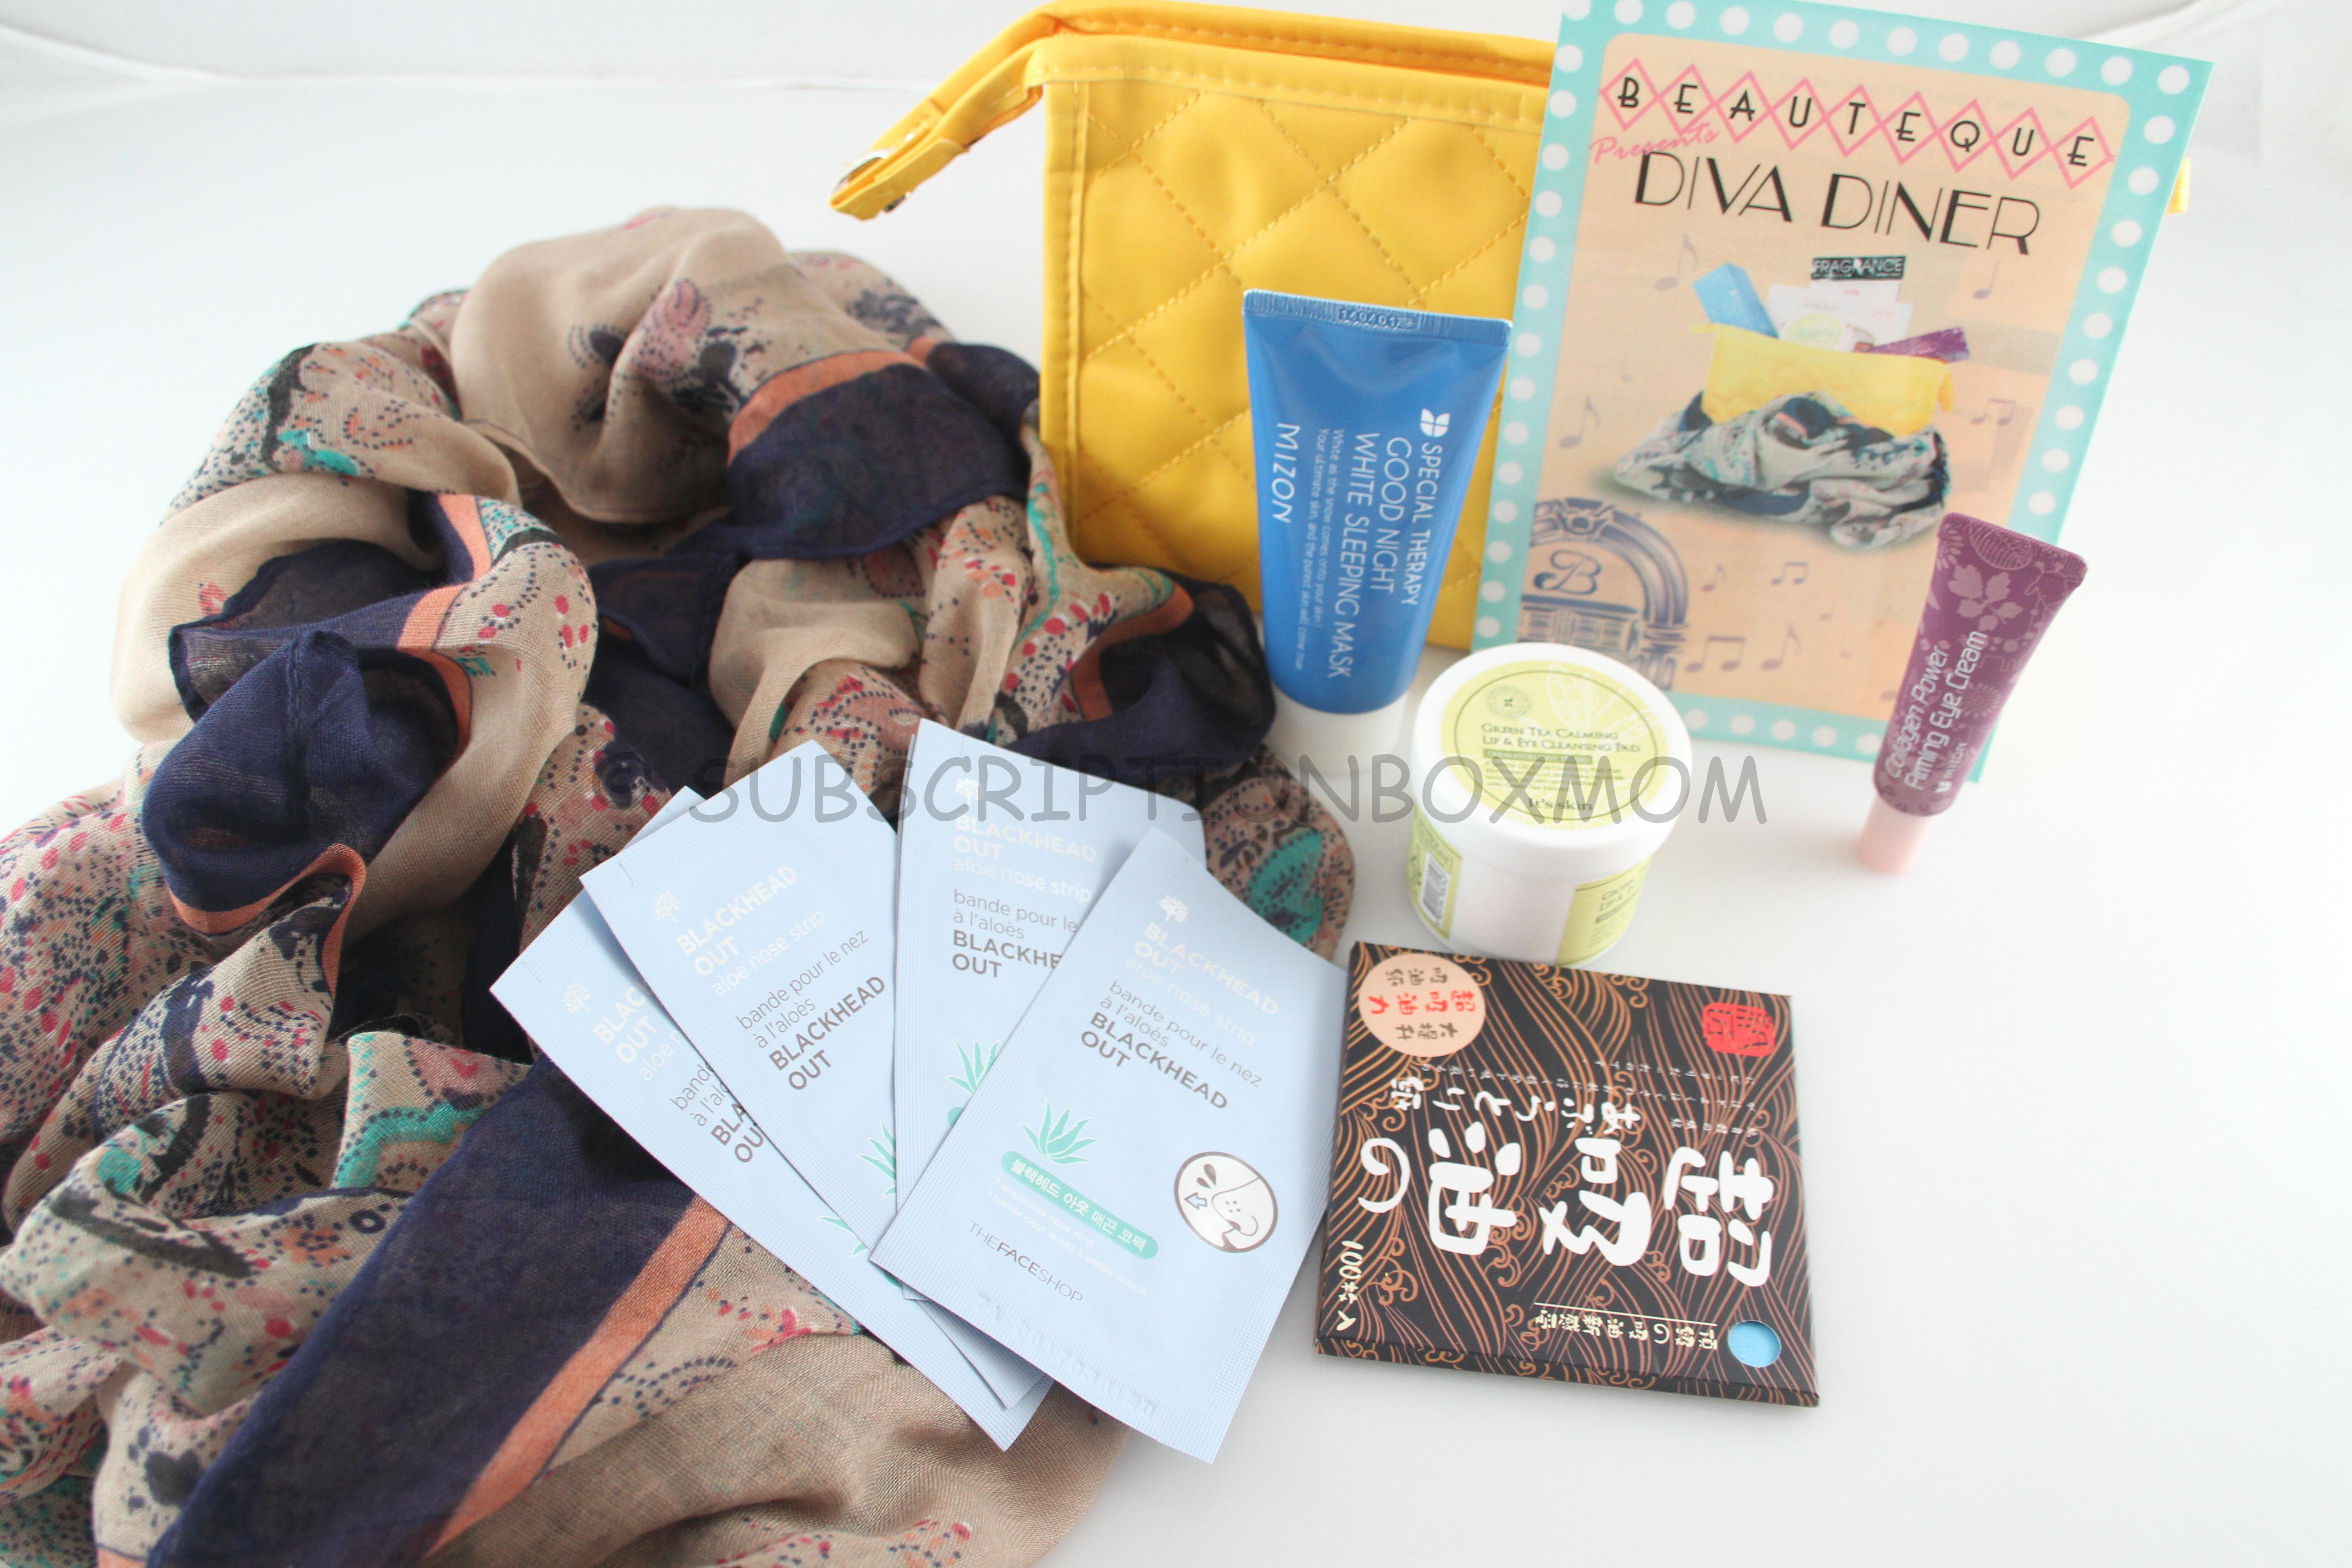 November 2014 Beauteque Beauty Bag Review